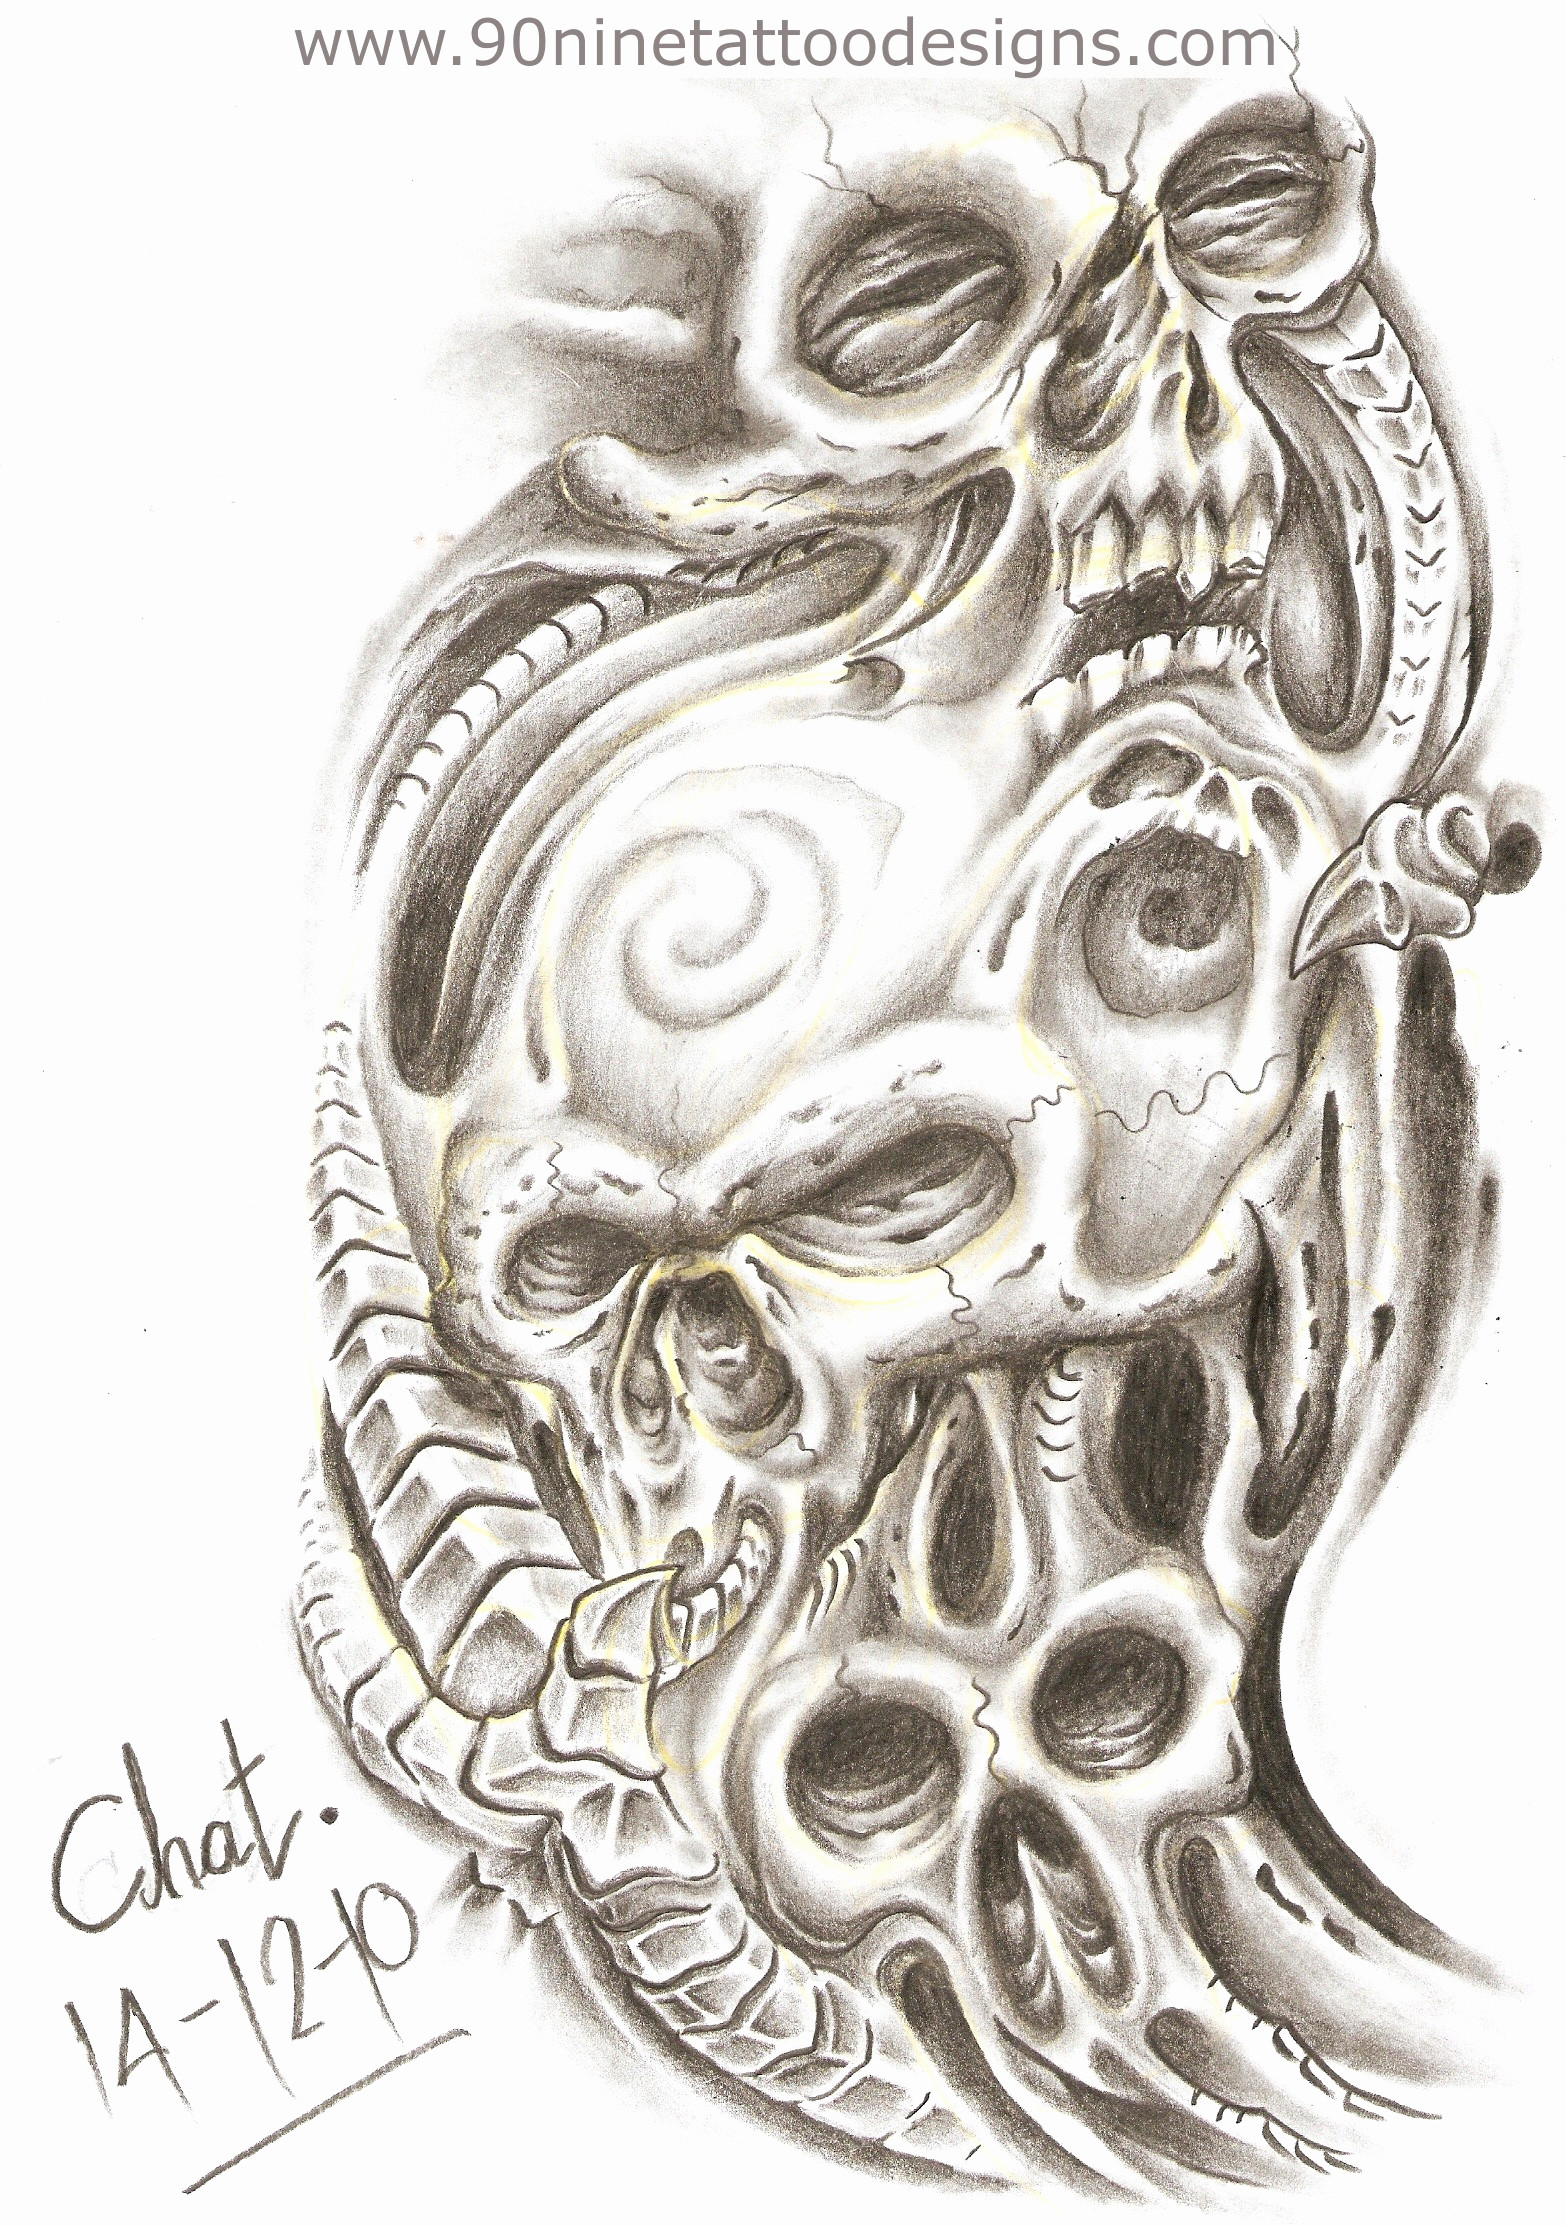 Res: 1566x2226, Download by size:Handphone Tablet Desktop (Original Size). Back To  Printable Tattoo Designs